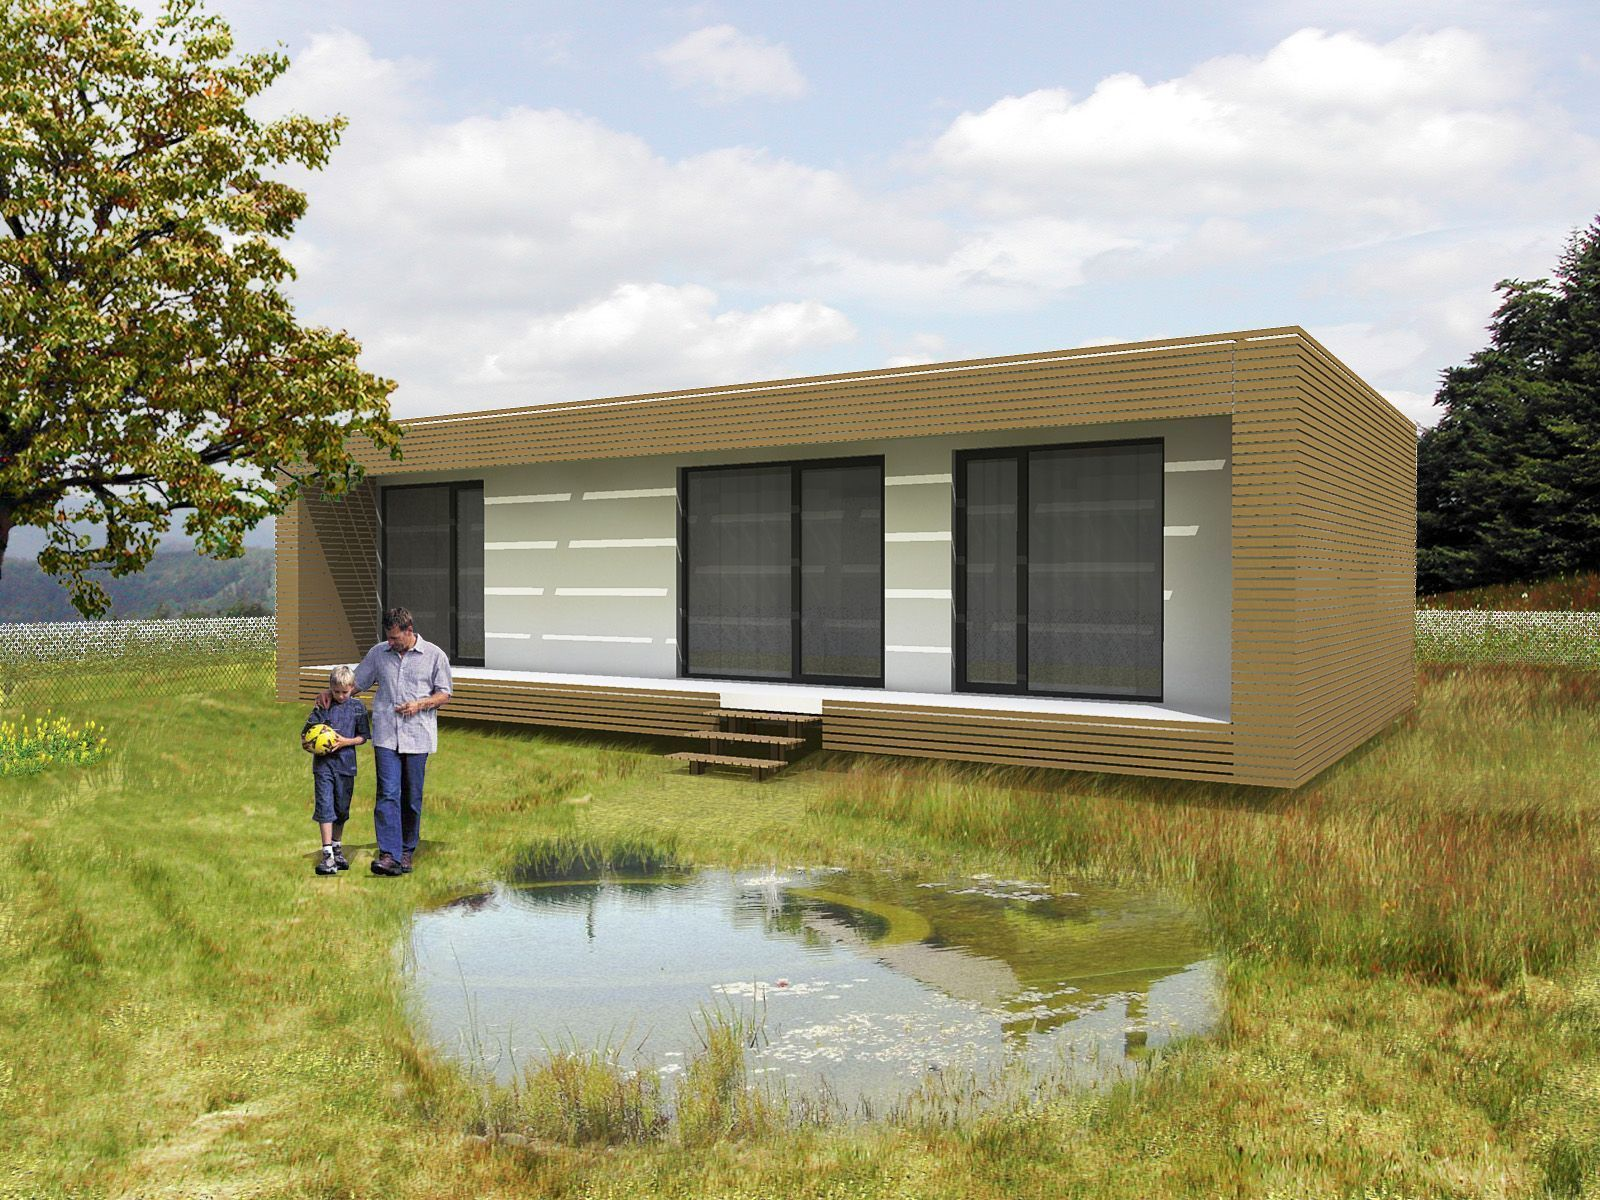 nest box takes the simple idea of designing modular prefabricated spaces and bumping them up to - Deckideen Fr Modulare Huser